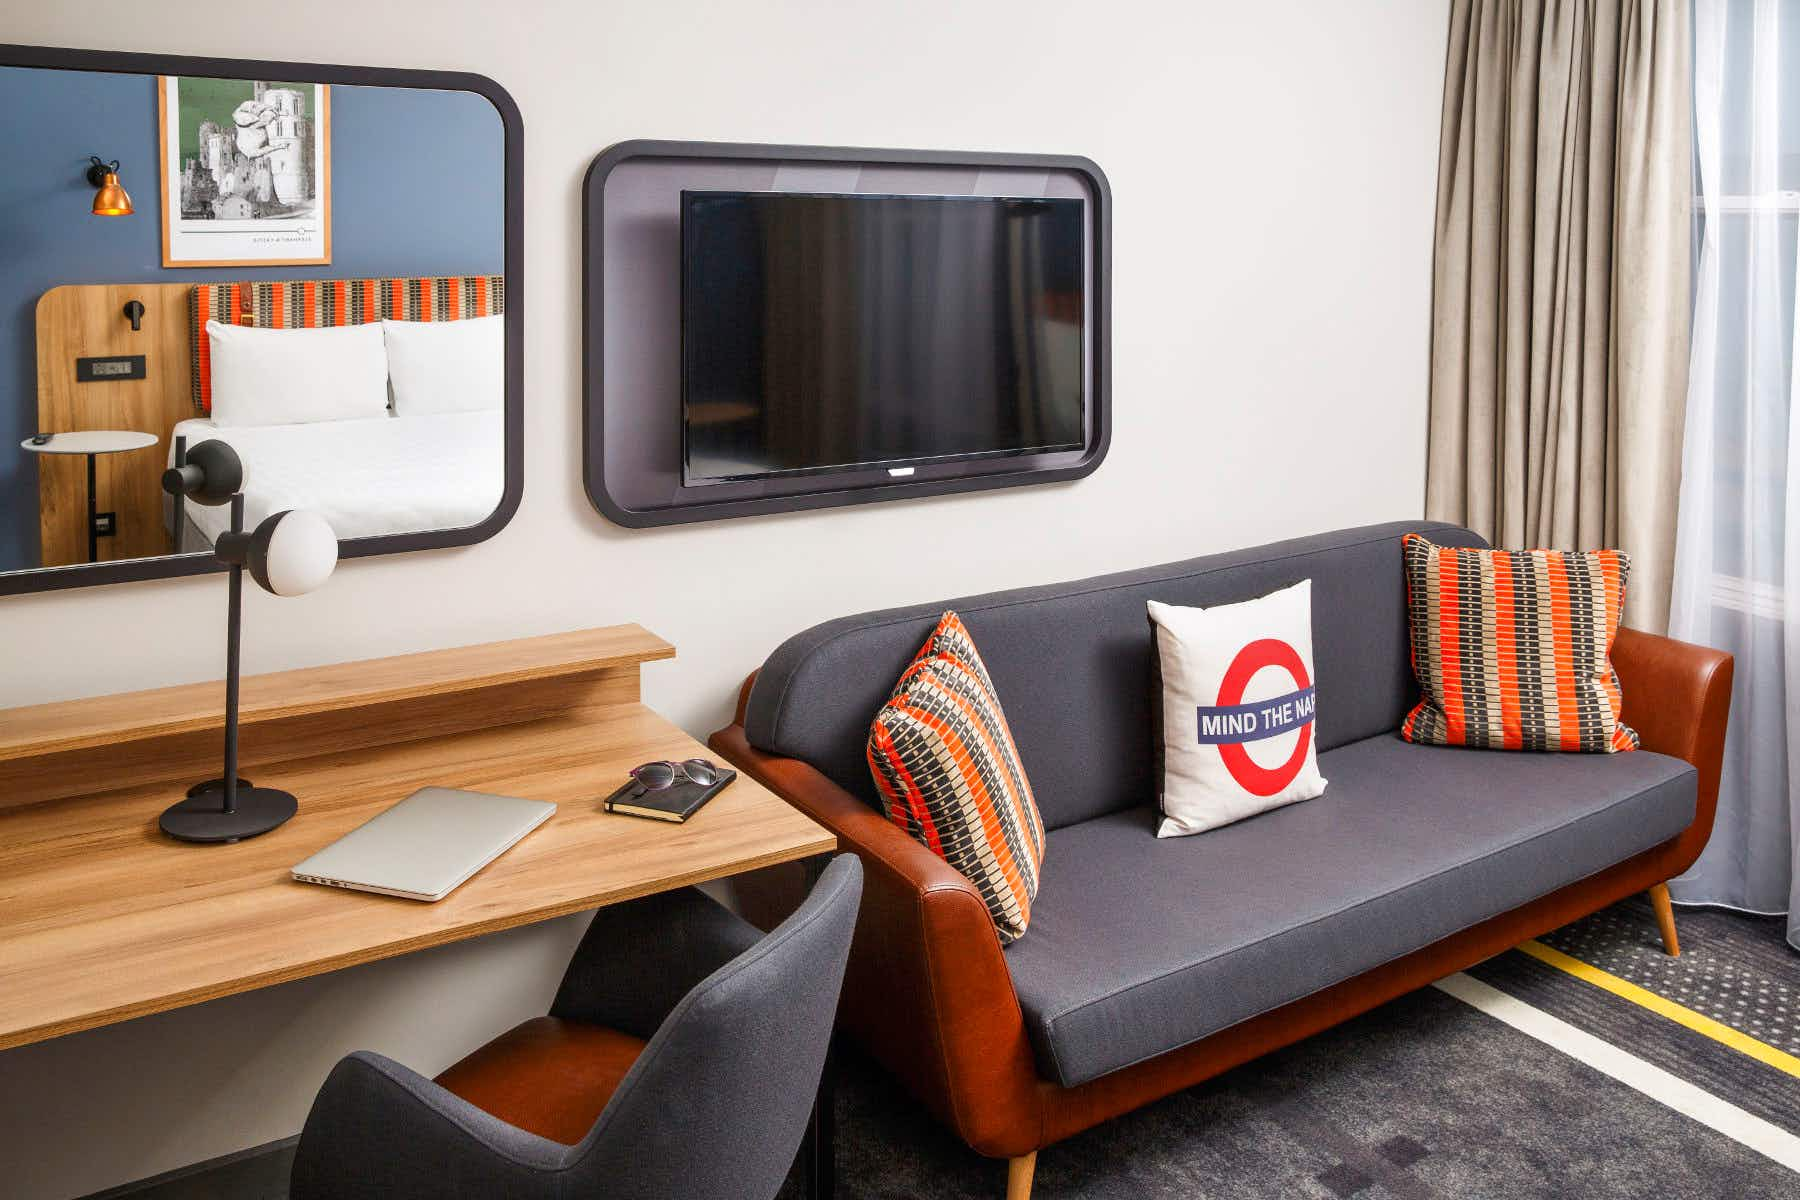 This funky Tube-themed hotel in London is open for business